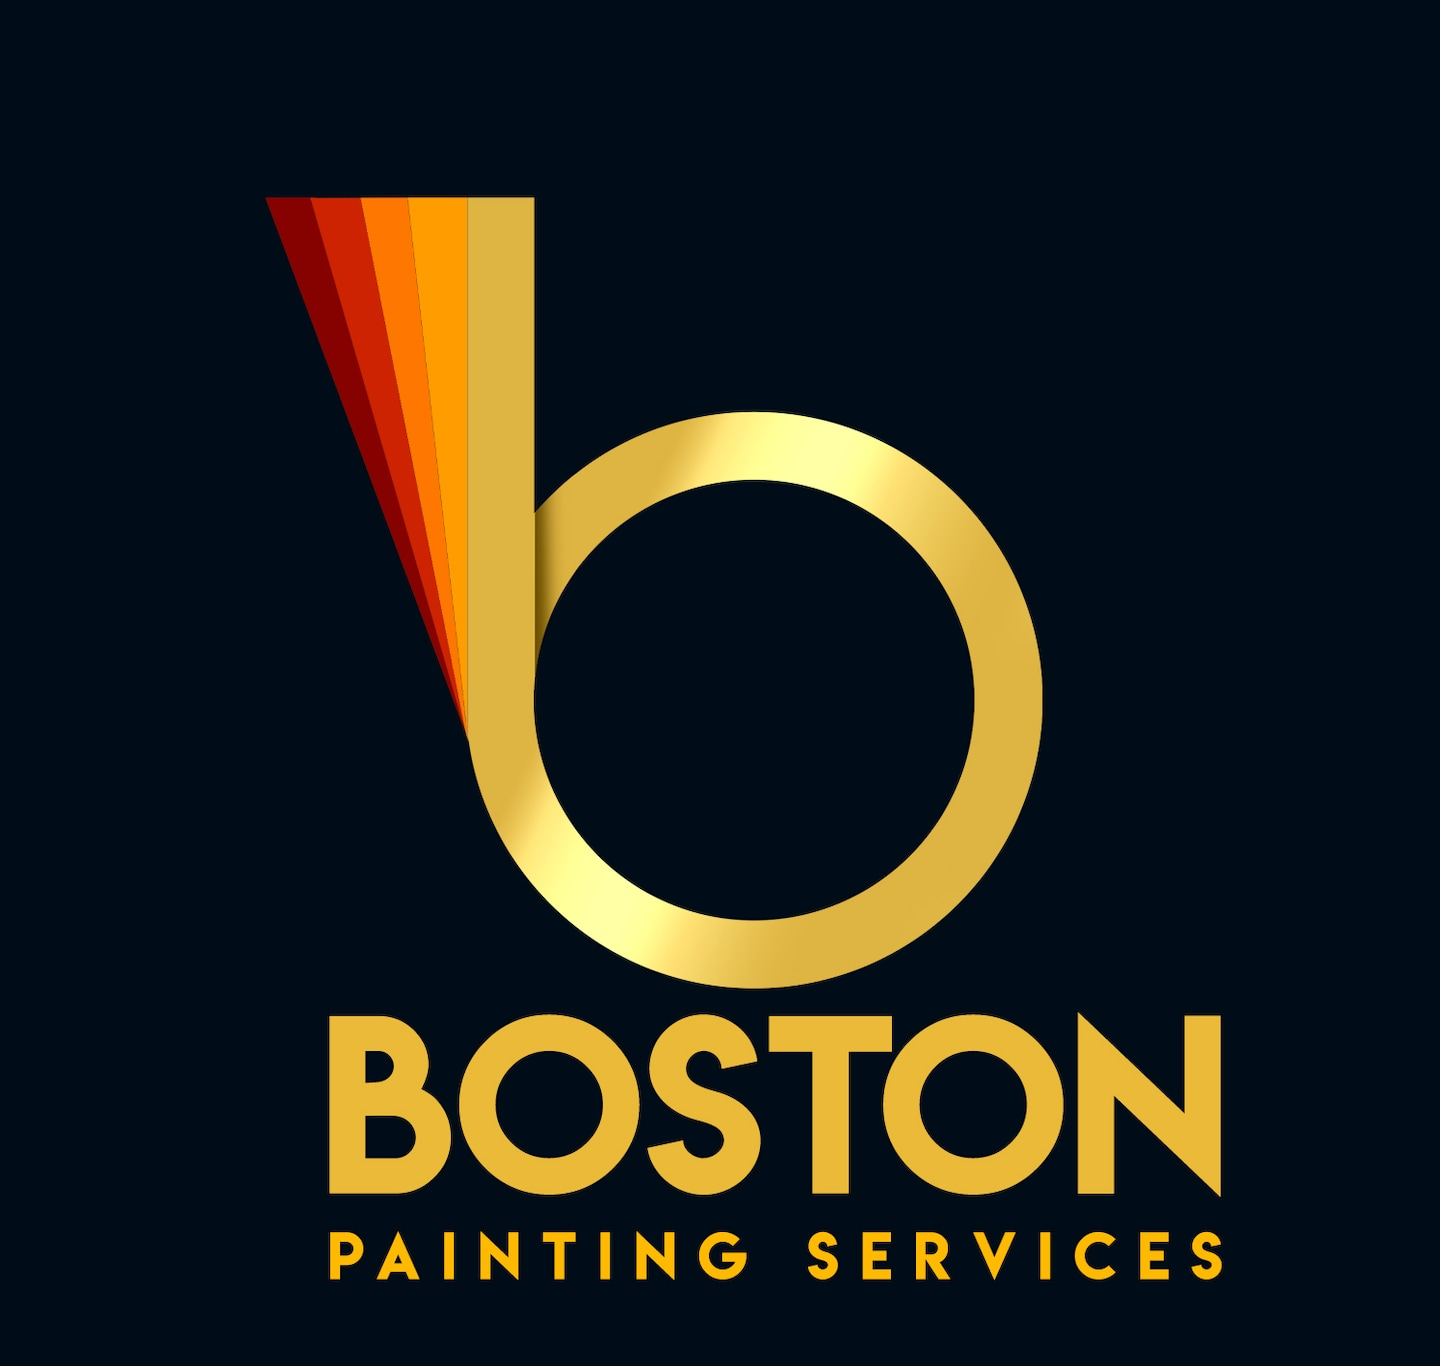 Boston Painting Services Inc.